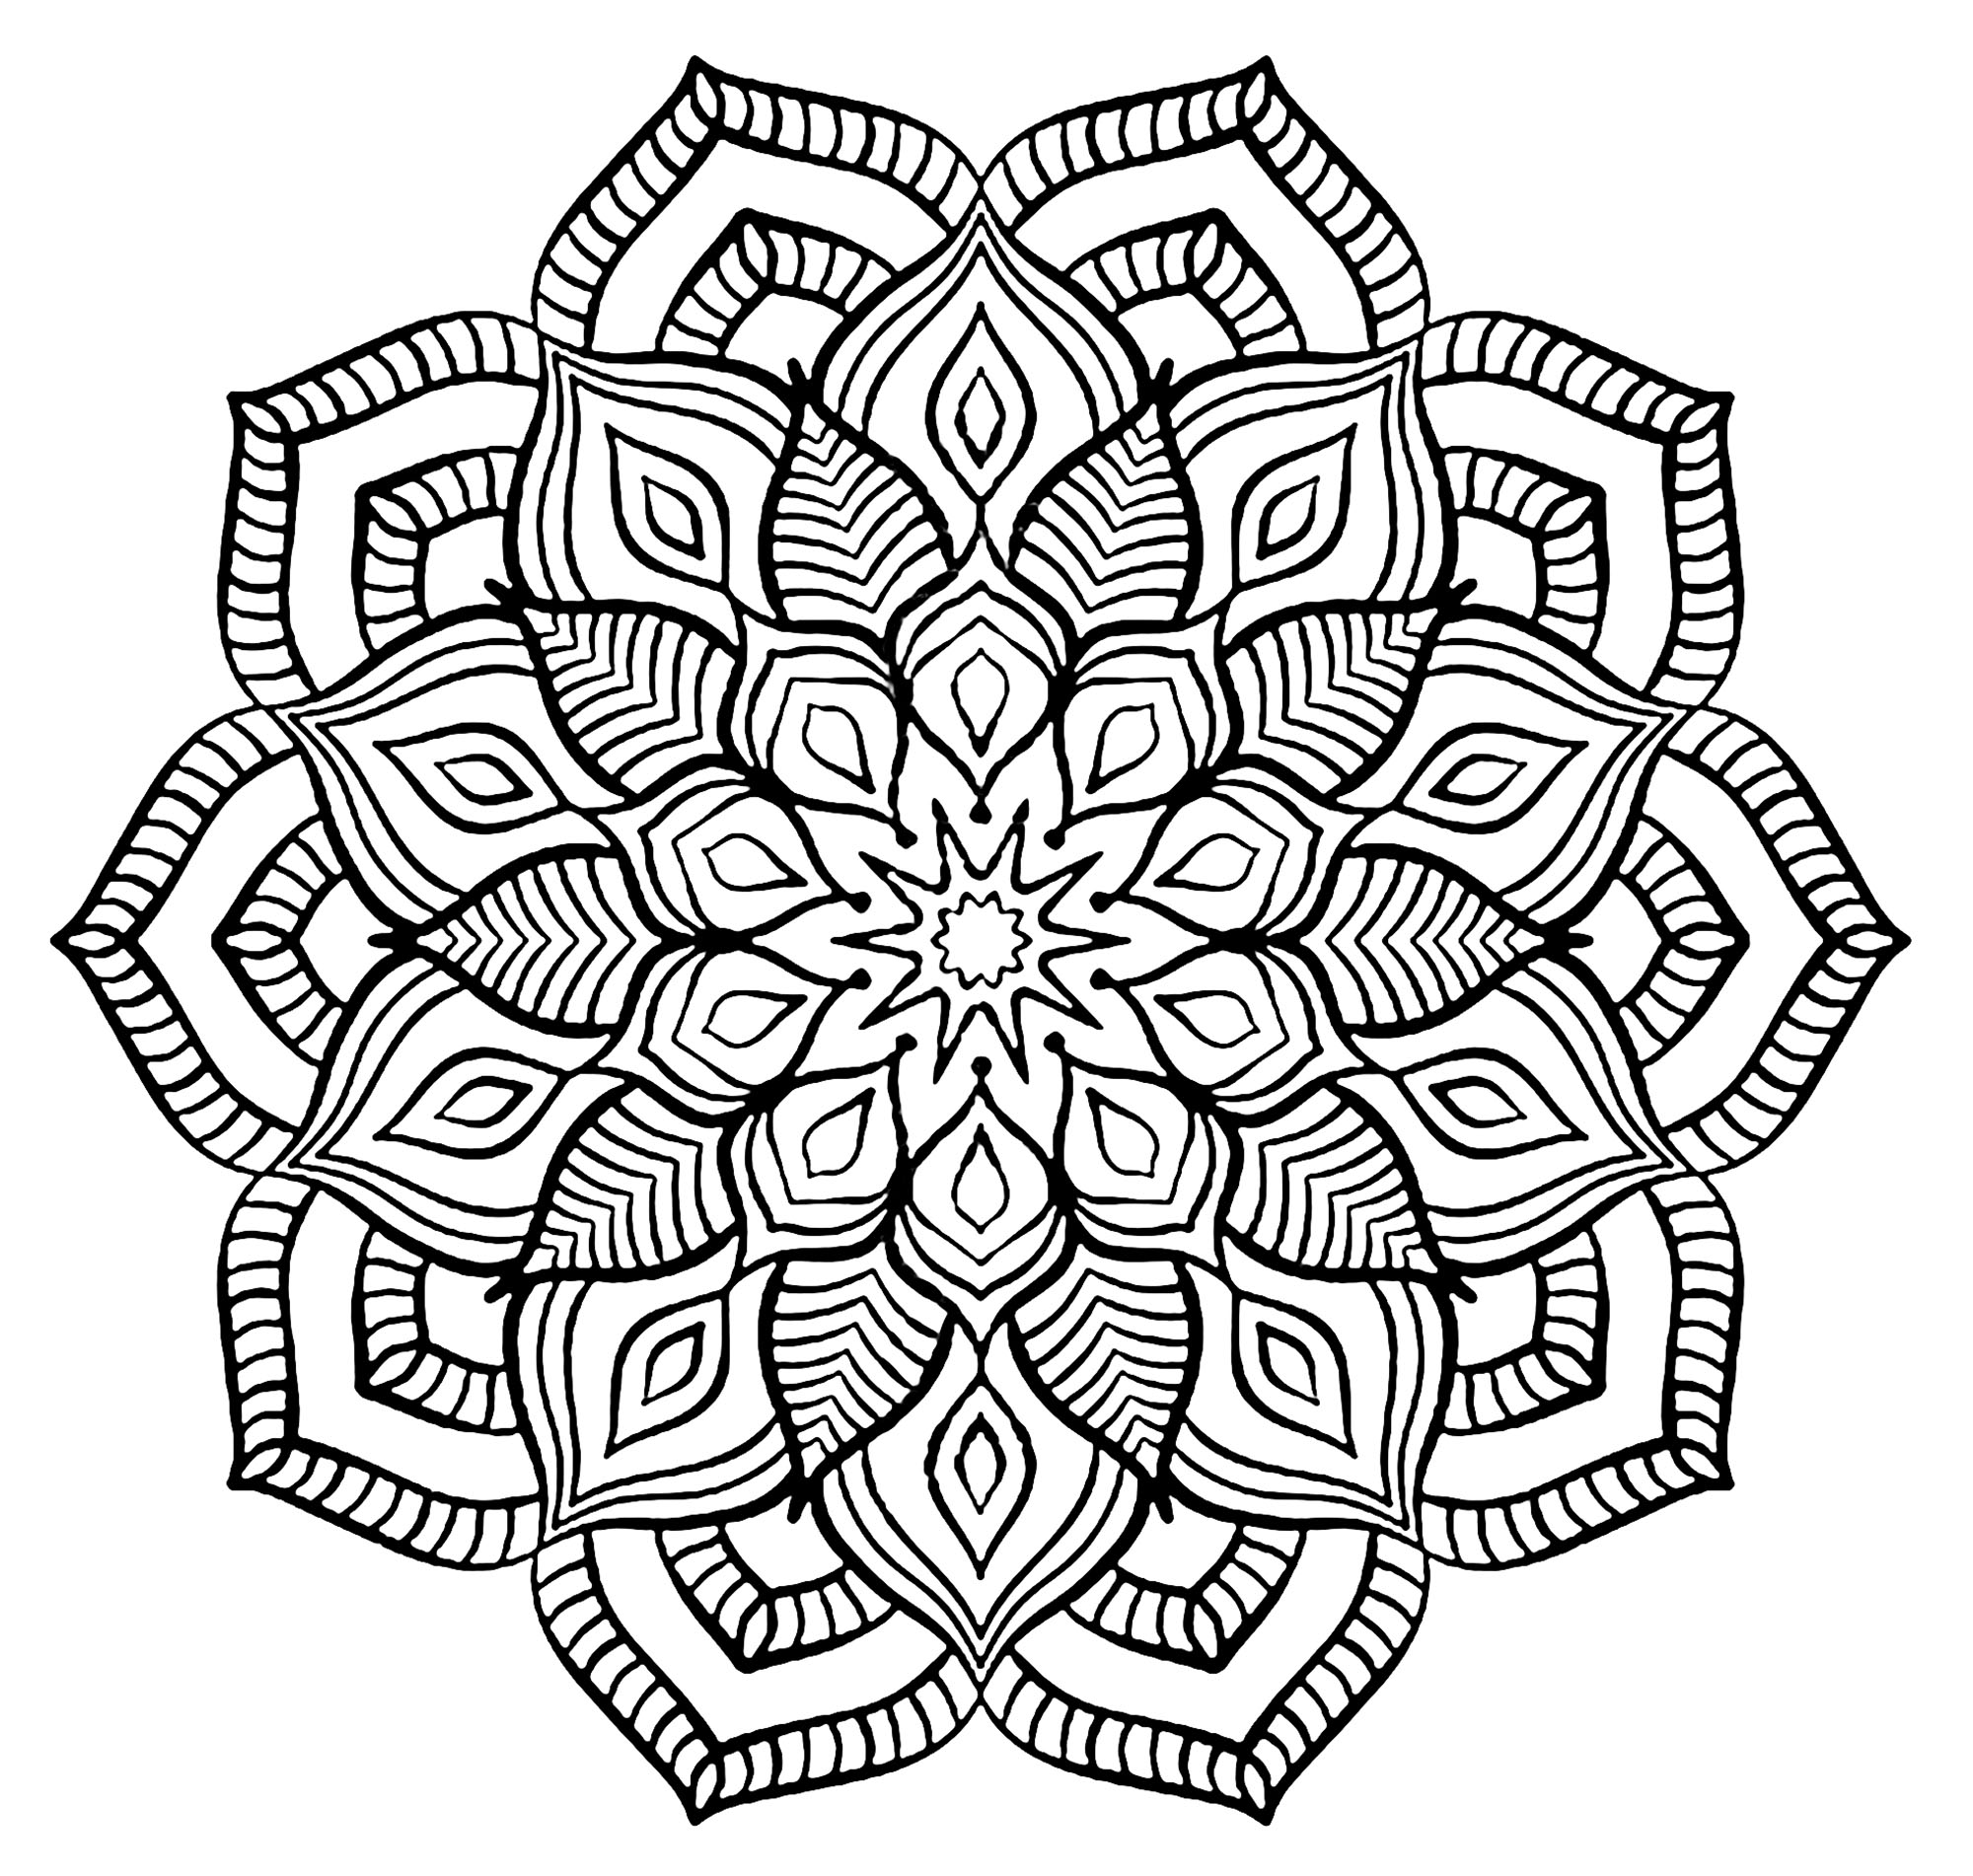 mandalas to color for adults quotthe big flowerquot mandala difficult mandalas for adults for mandalas adults color to